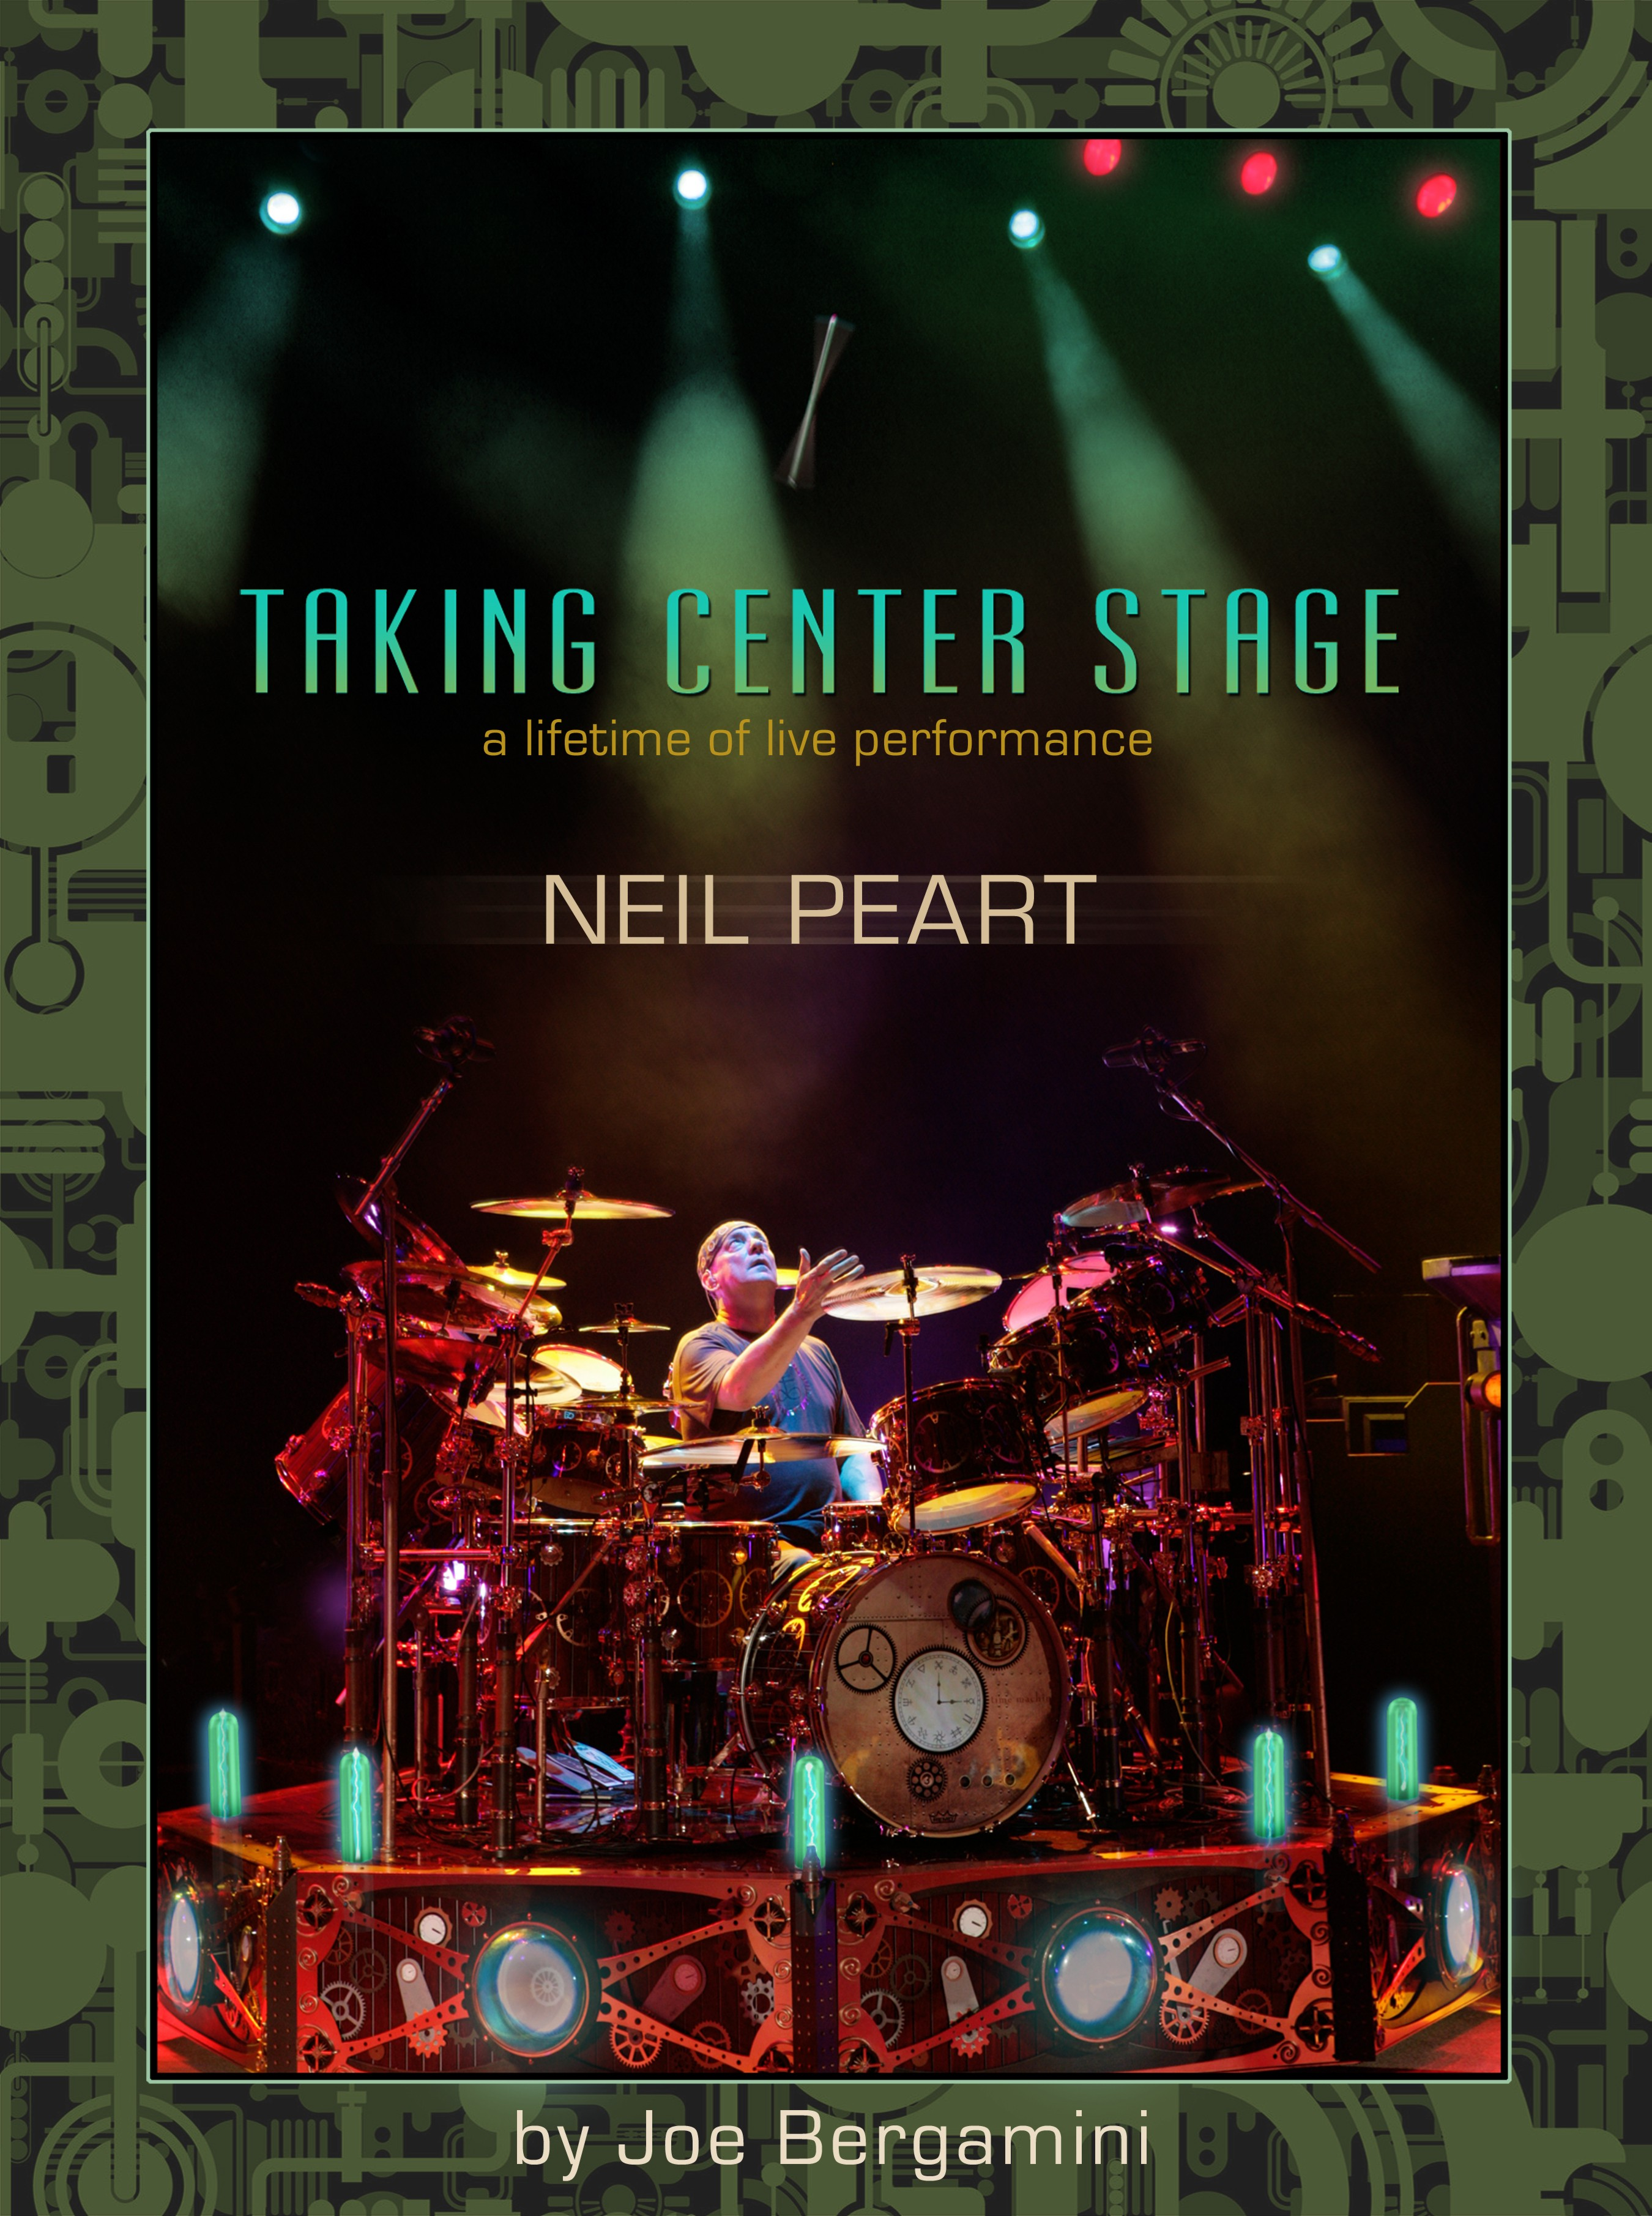 Neil Peart: Taking Center Stage: A Lifetime of Live Performance (Book)